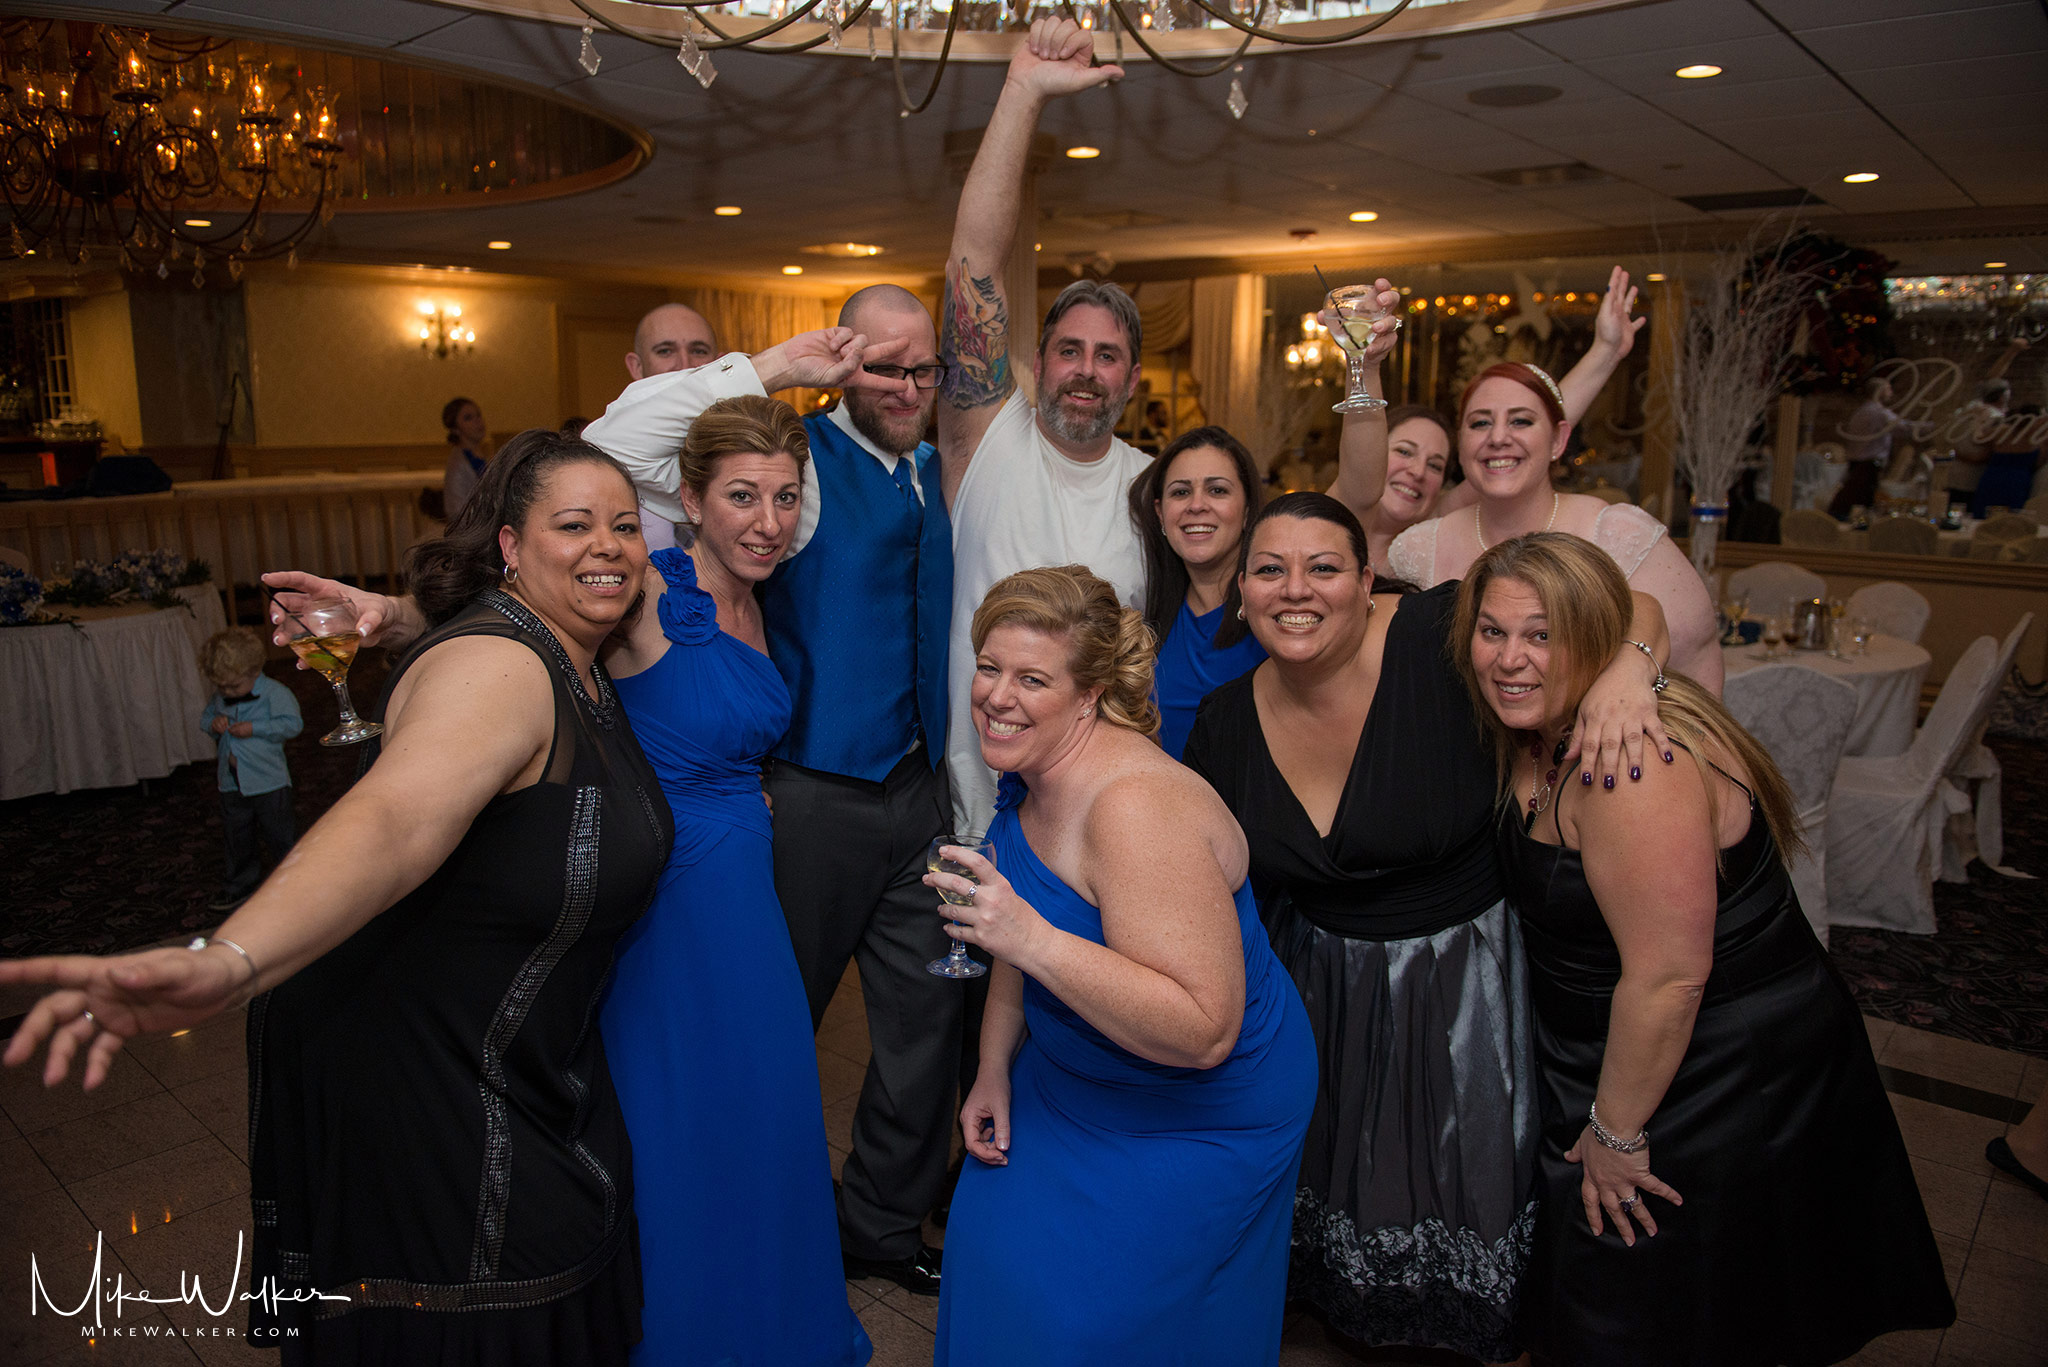 Wedding group partying on the dance floor. Wedding photography by Mike Walker.